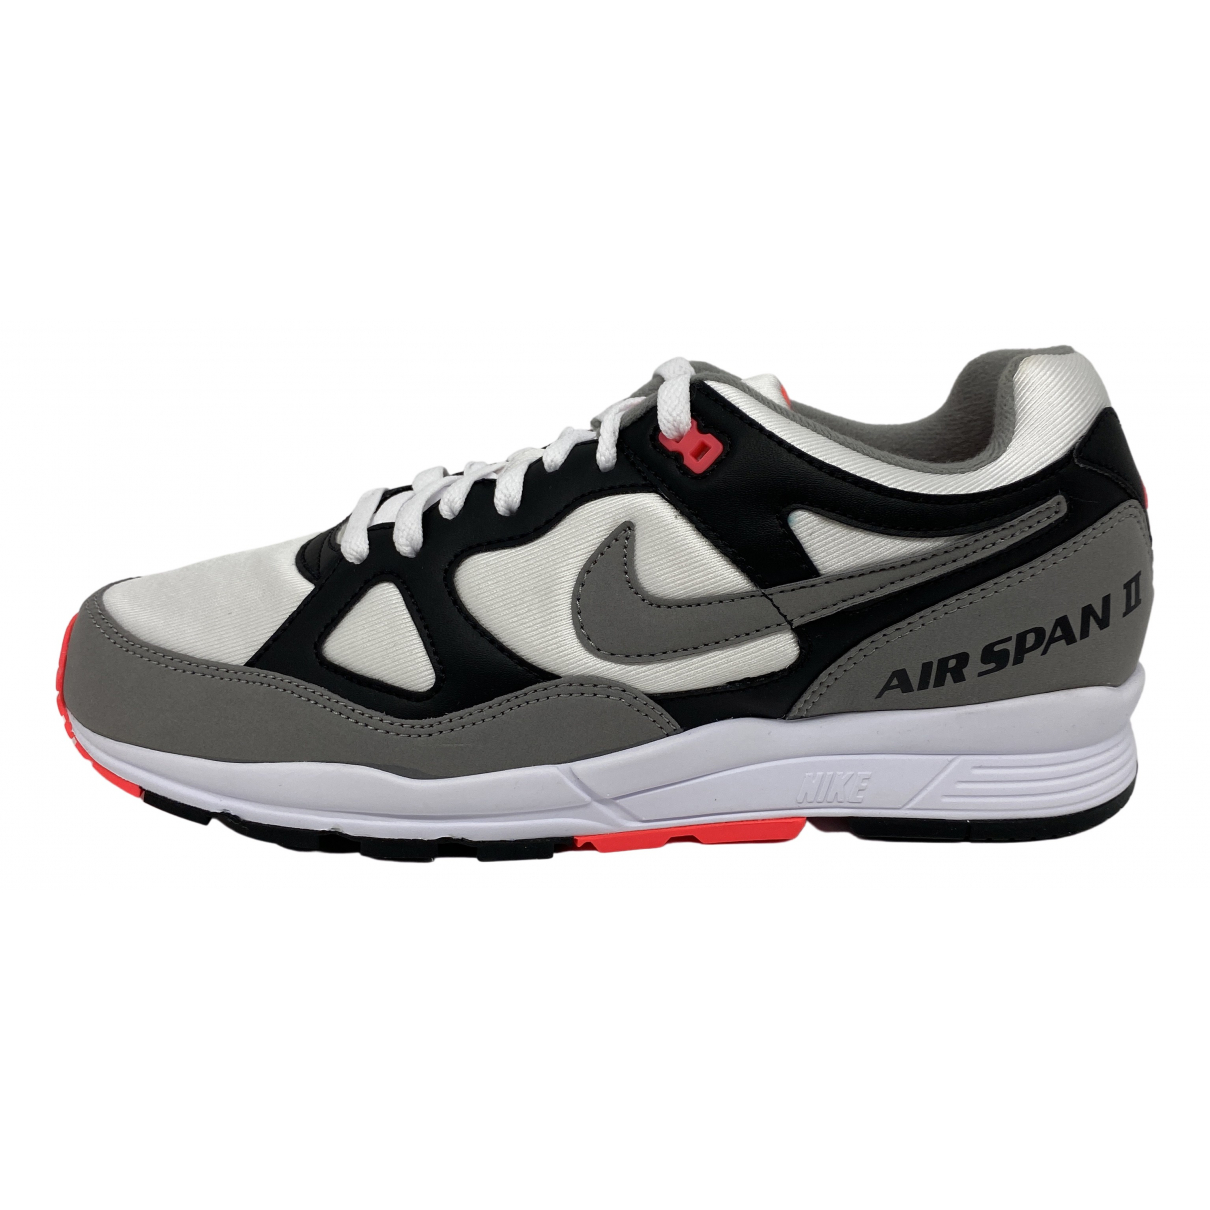 Nike Air Span II Grey Leather Trainers for Men 44 EU